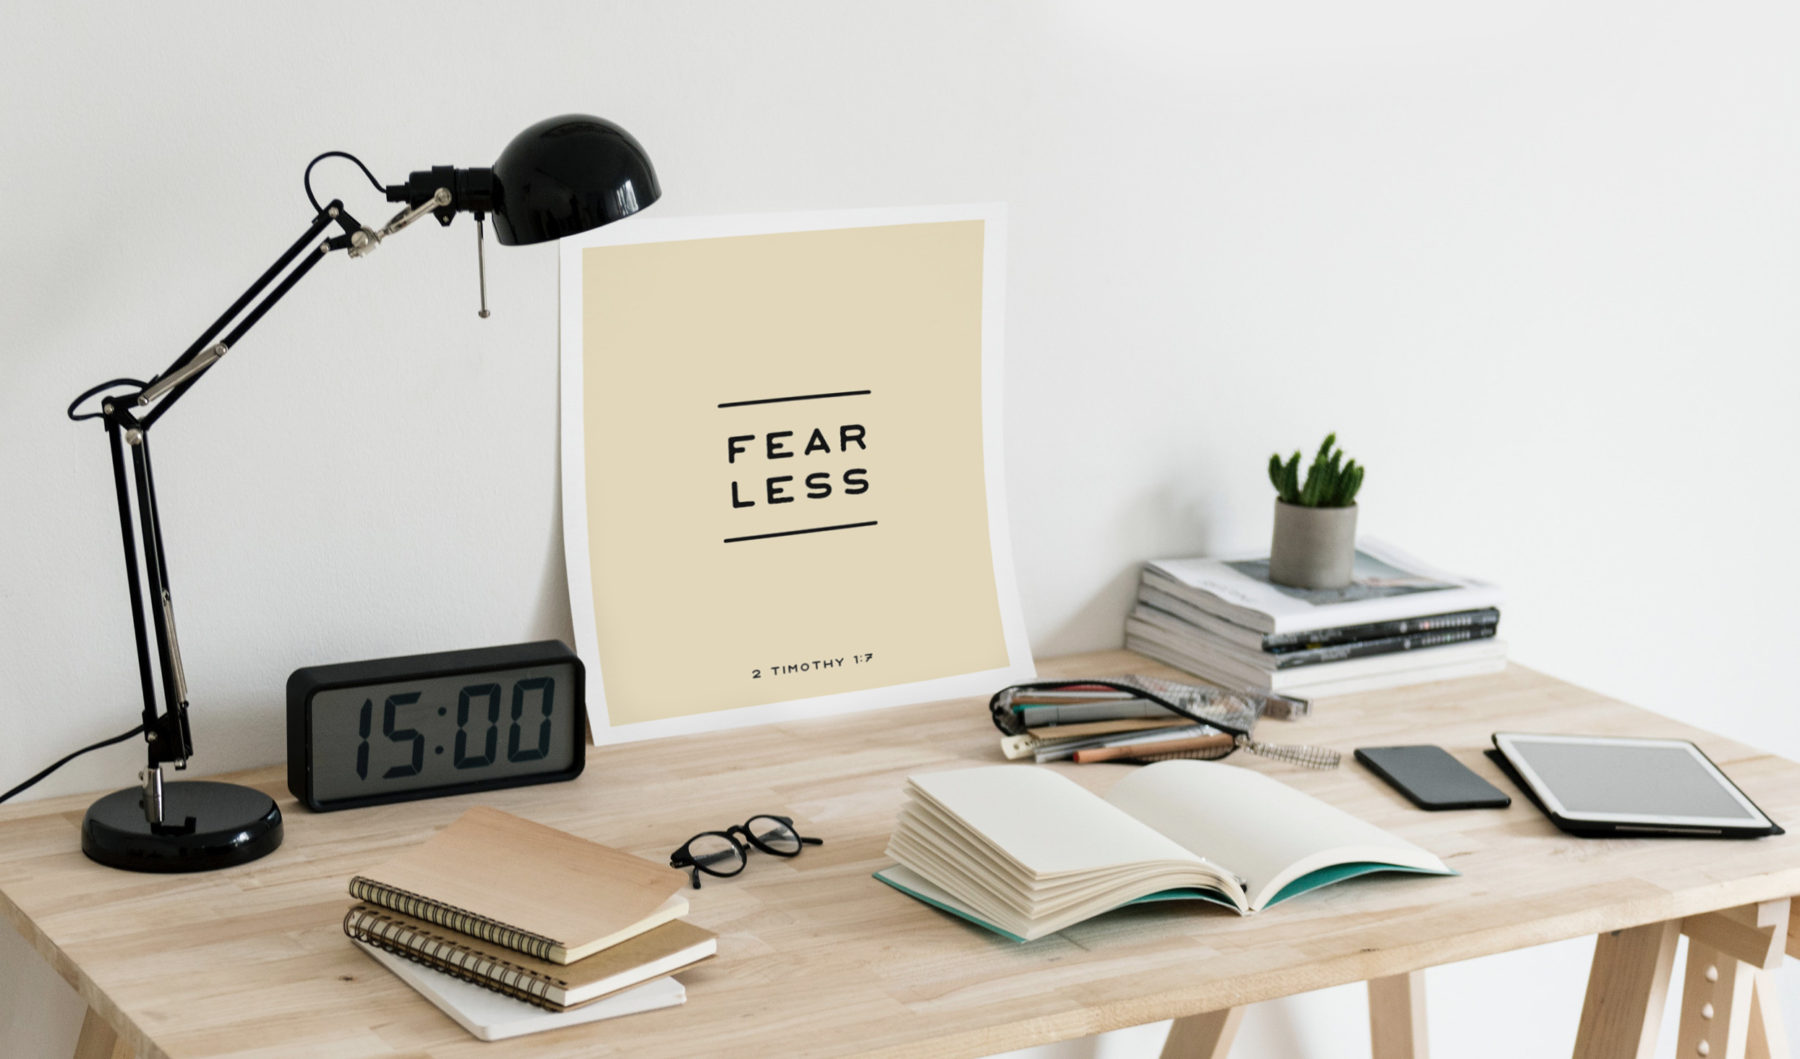 Live Fearless Poster and Backgrounds